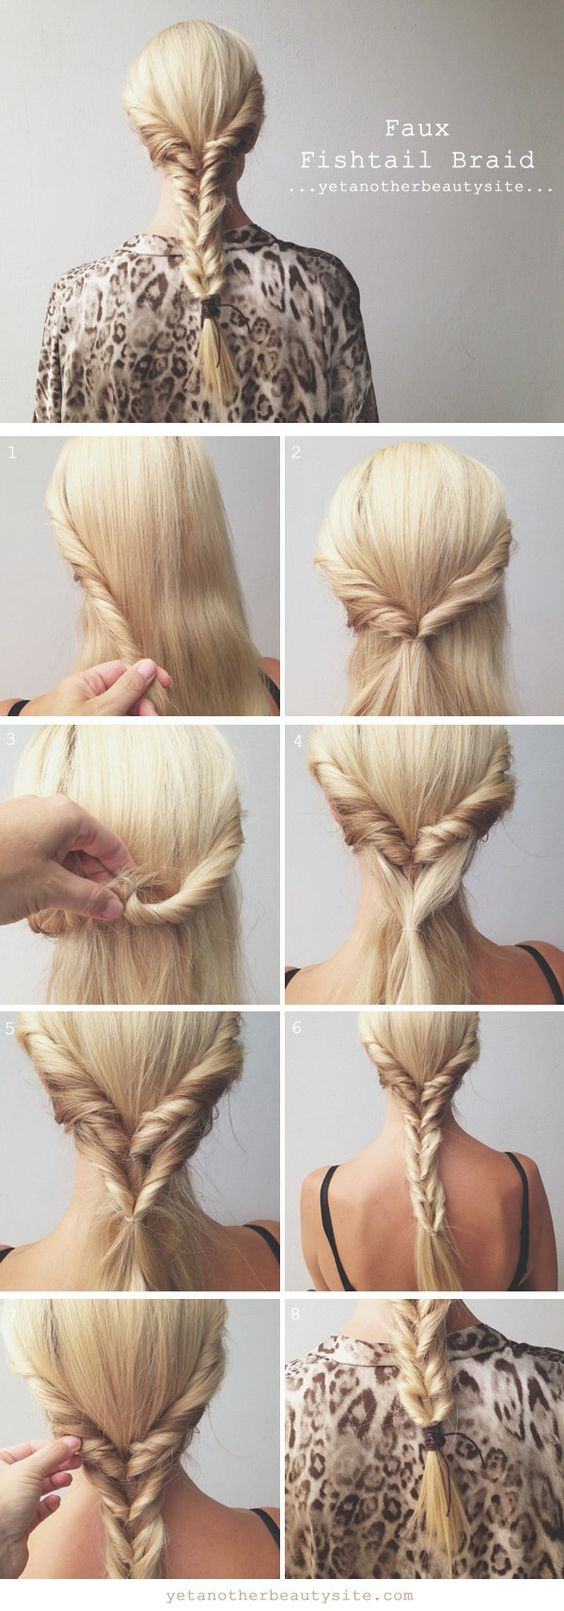 Cheat the fishtail braid with this alternative. | 30 Stunning No-Heat Hairstyles To Help You Through Summer